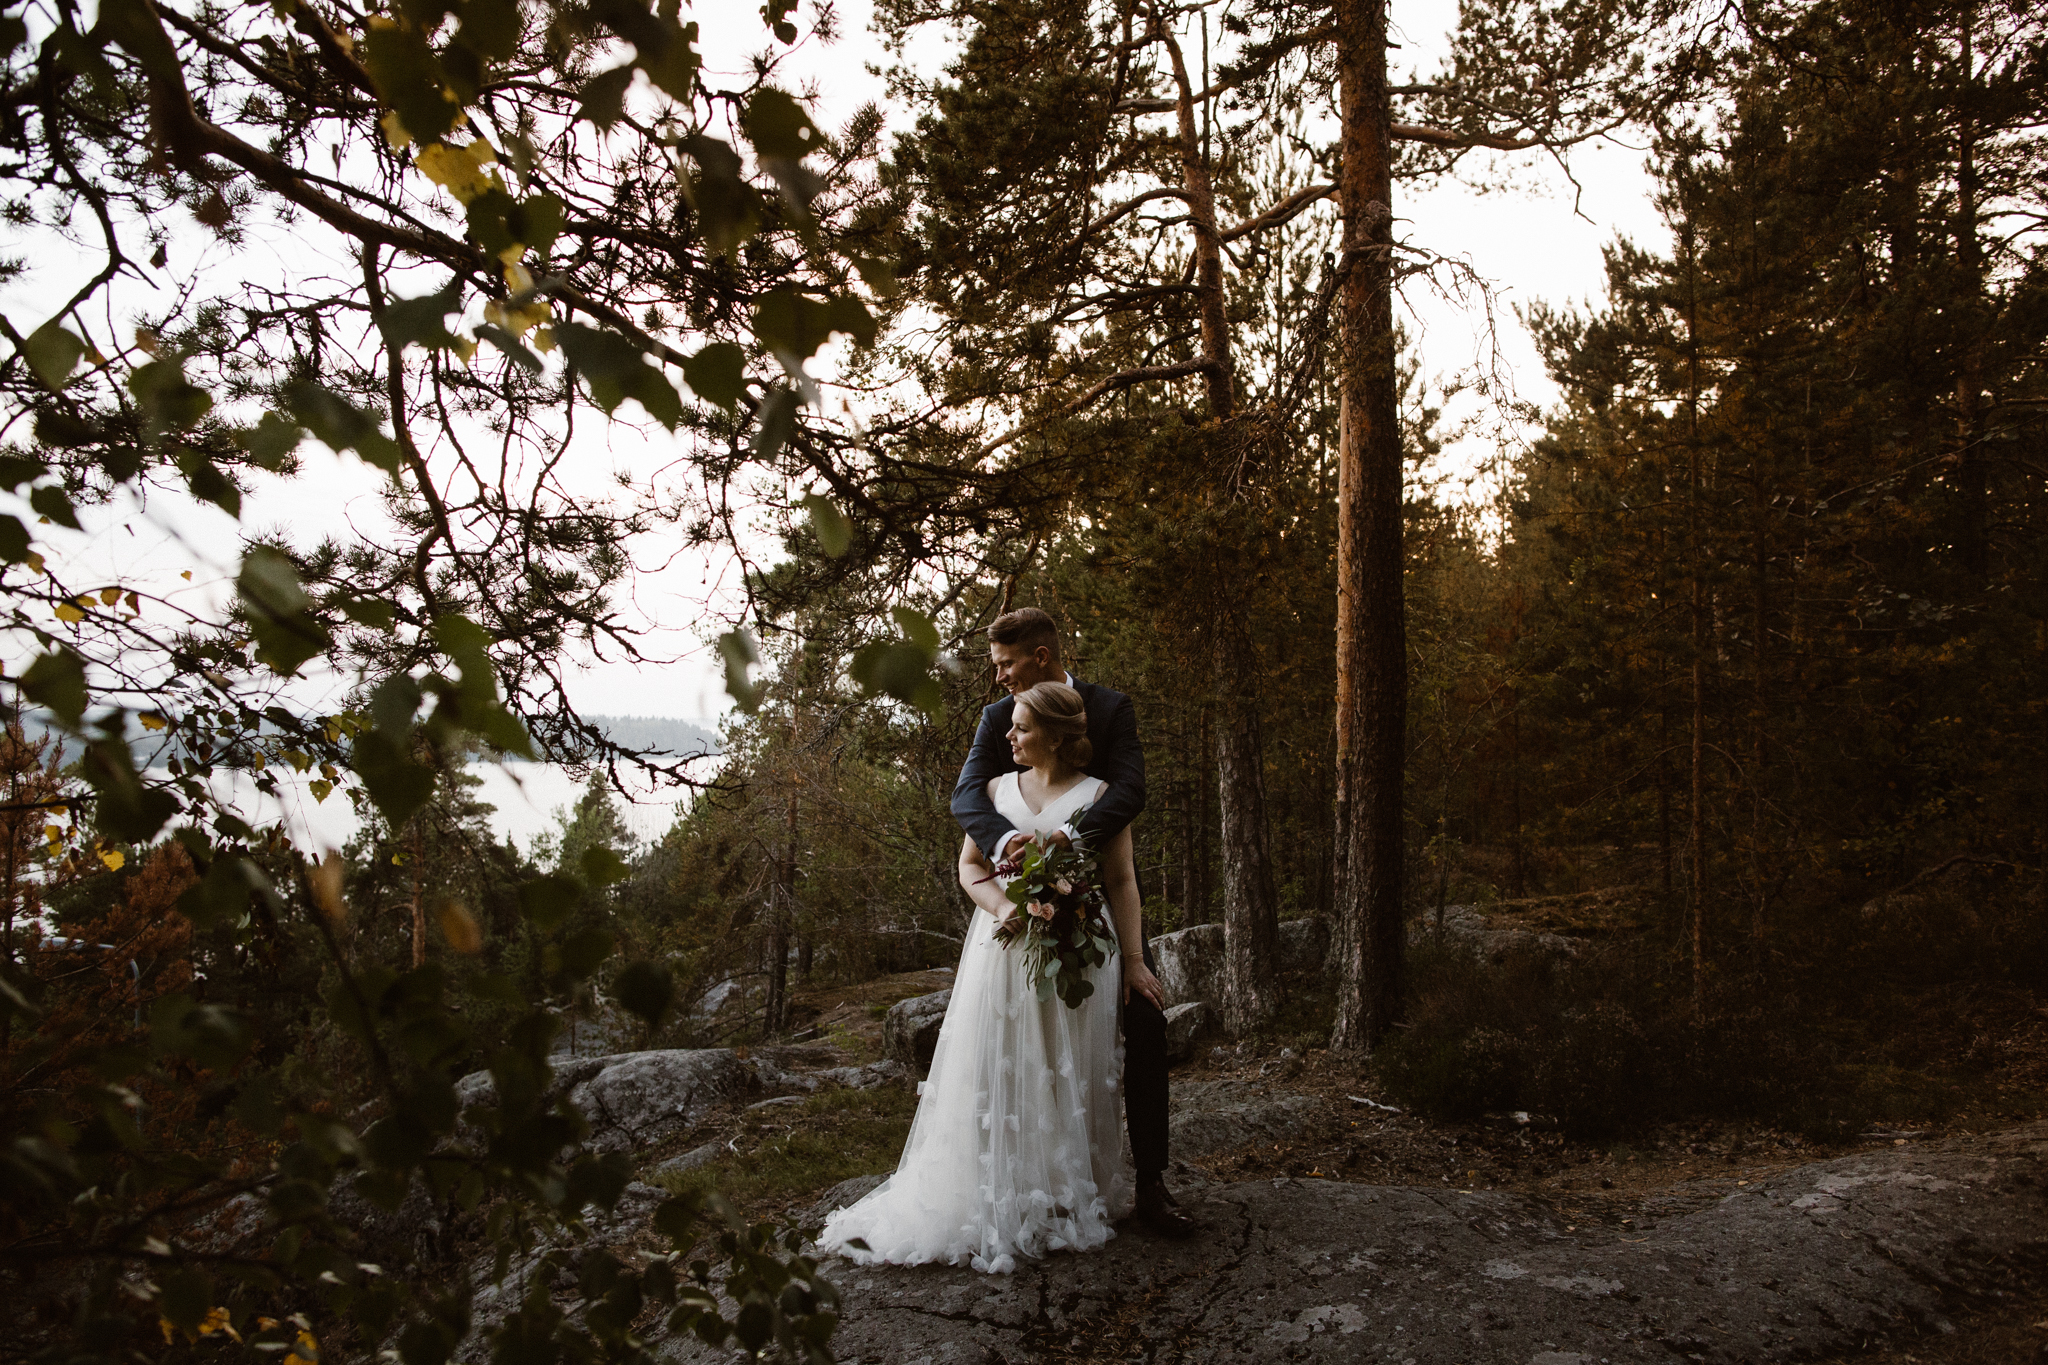 Minna and Jaakko-198.jpg